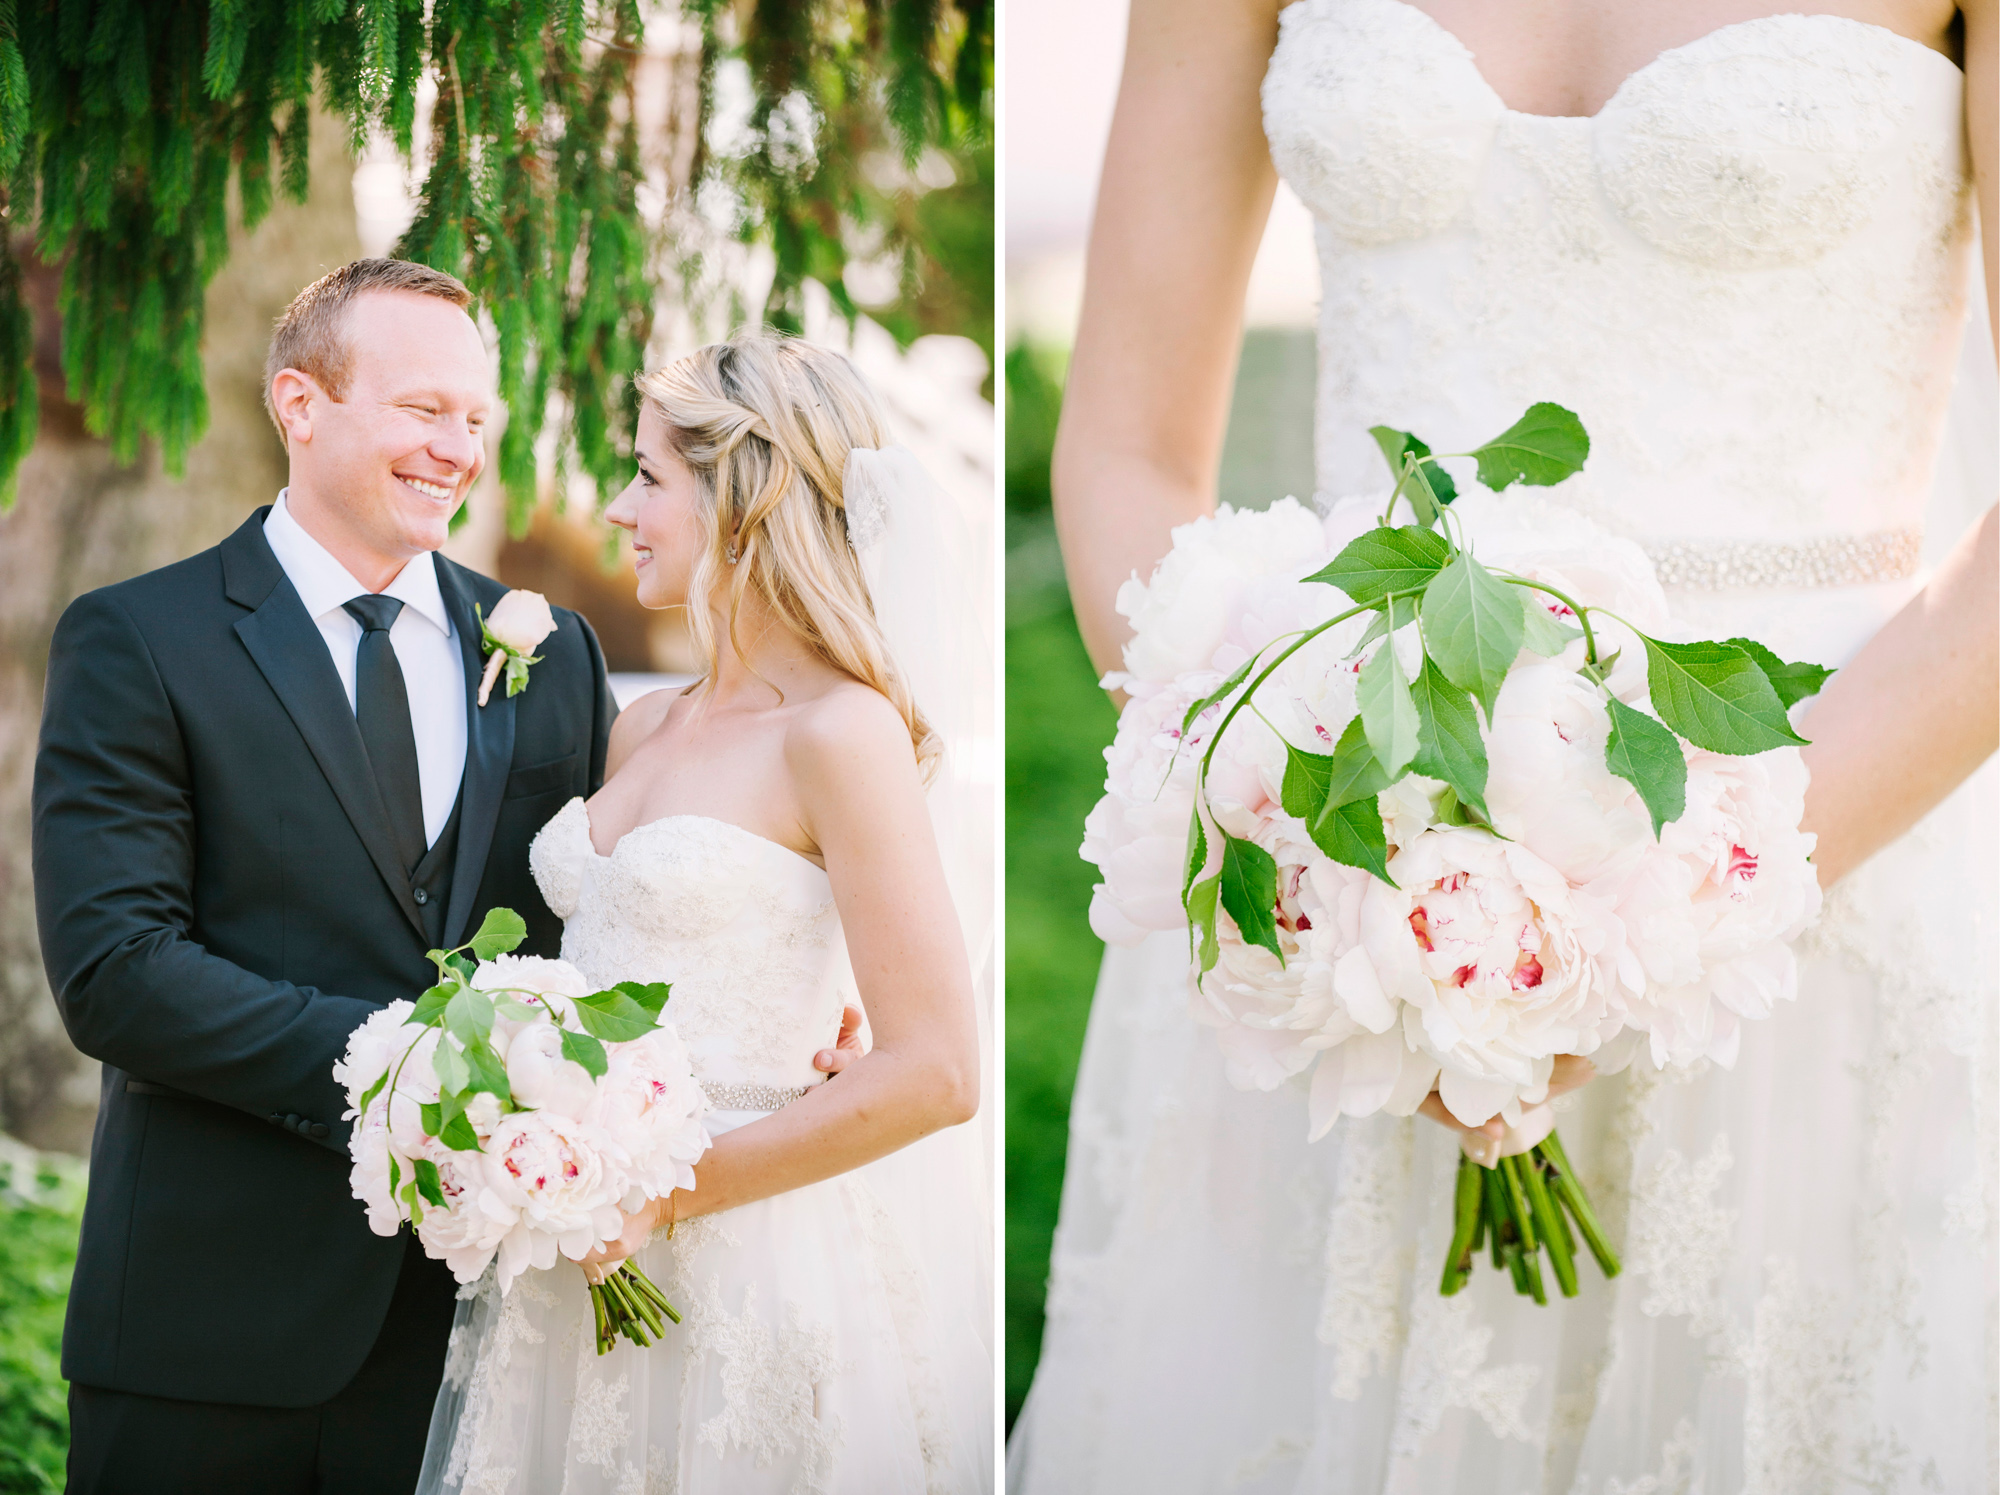 15Katy_Eddie_Talcott_House_Wedding_Westbrook_CT_Tanya_Salazar_Photography.jpg